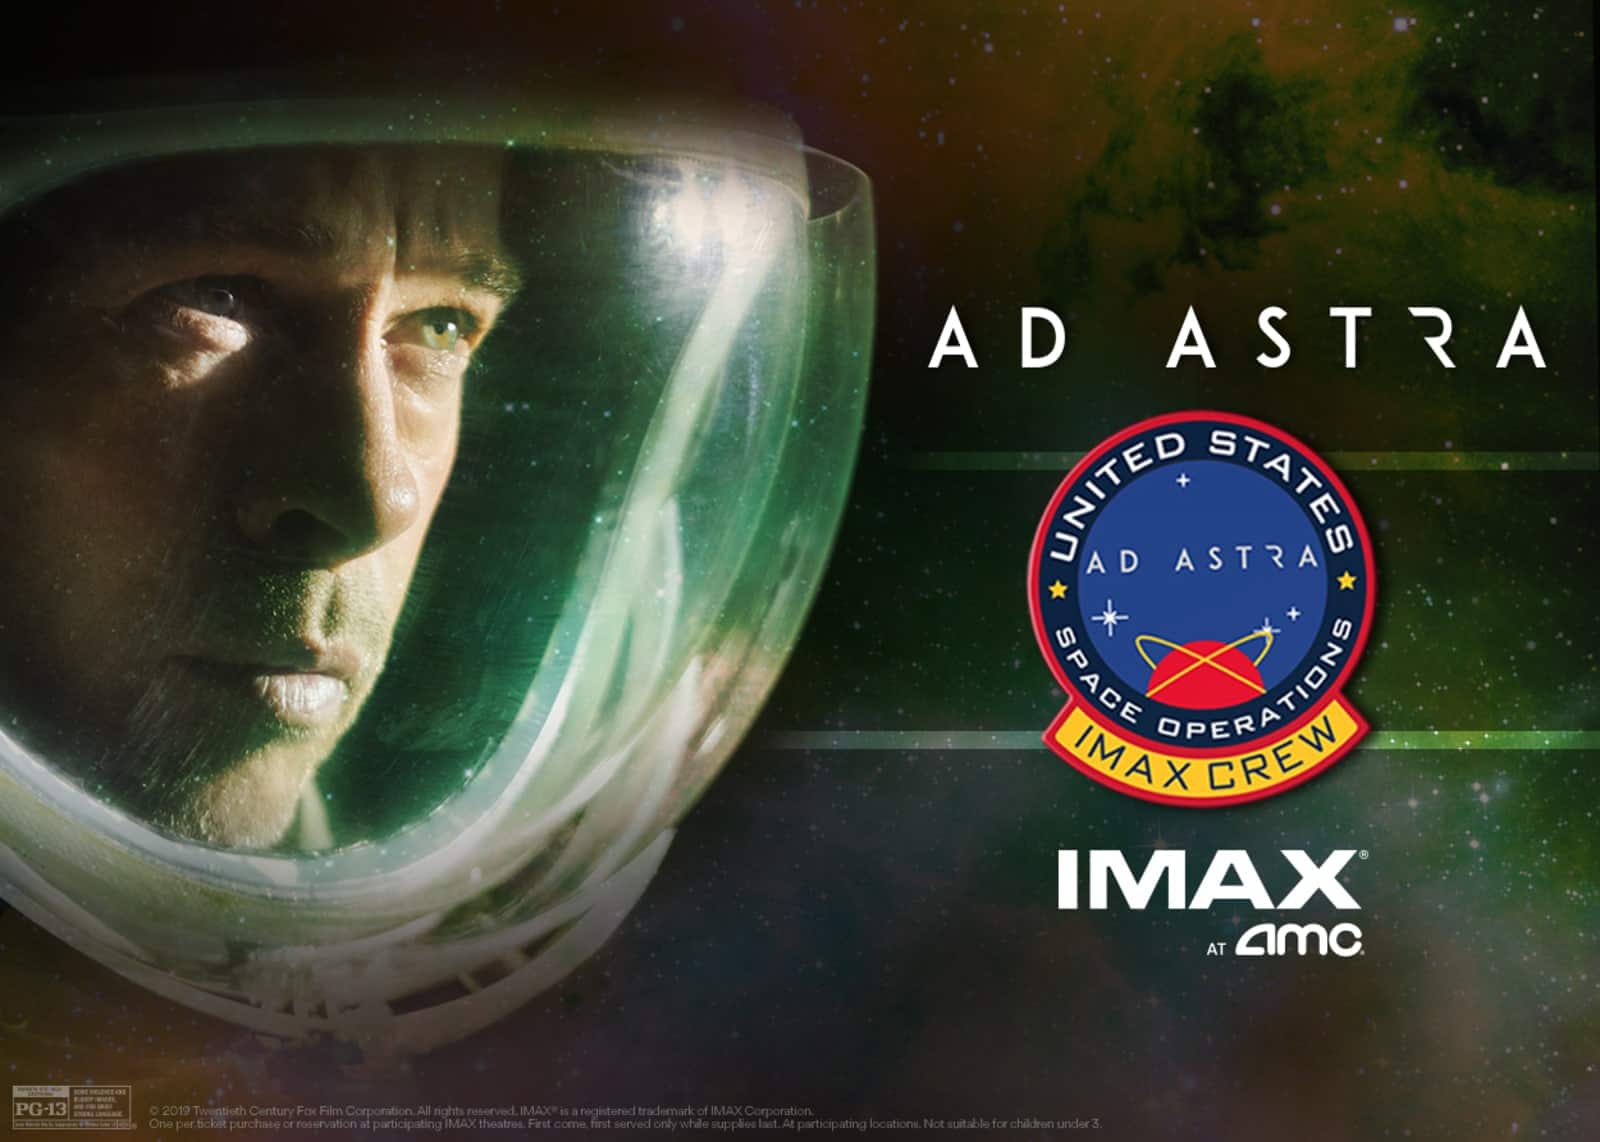 Ad Astra IMAX: See it at AMC Theatres (9/19 - 9/22), Get Free Collectible Pin; See it at Regal Cinemas (Starting 9/19), Get Free Iron-on Mission Patch